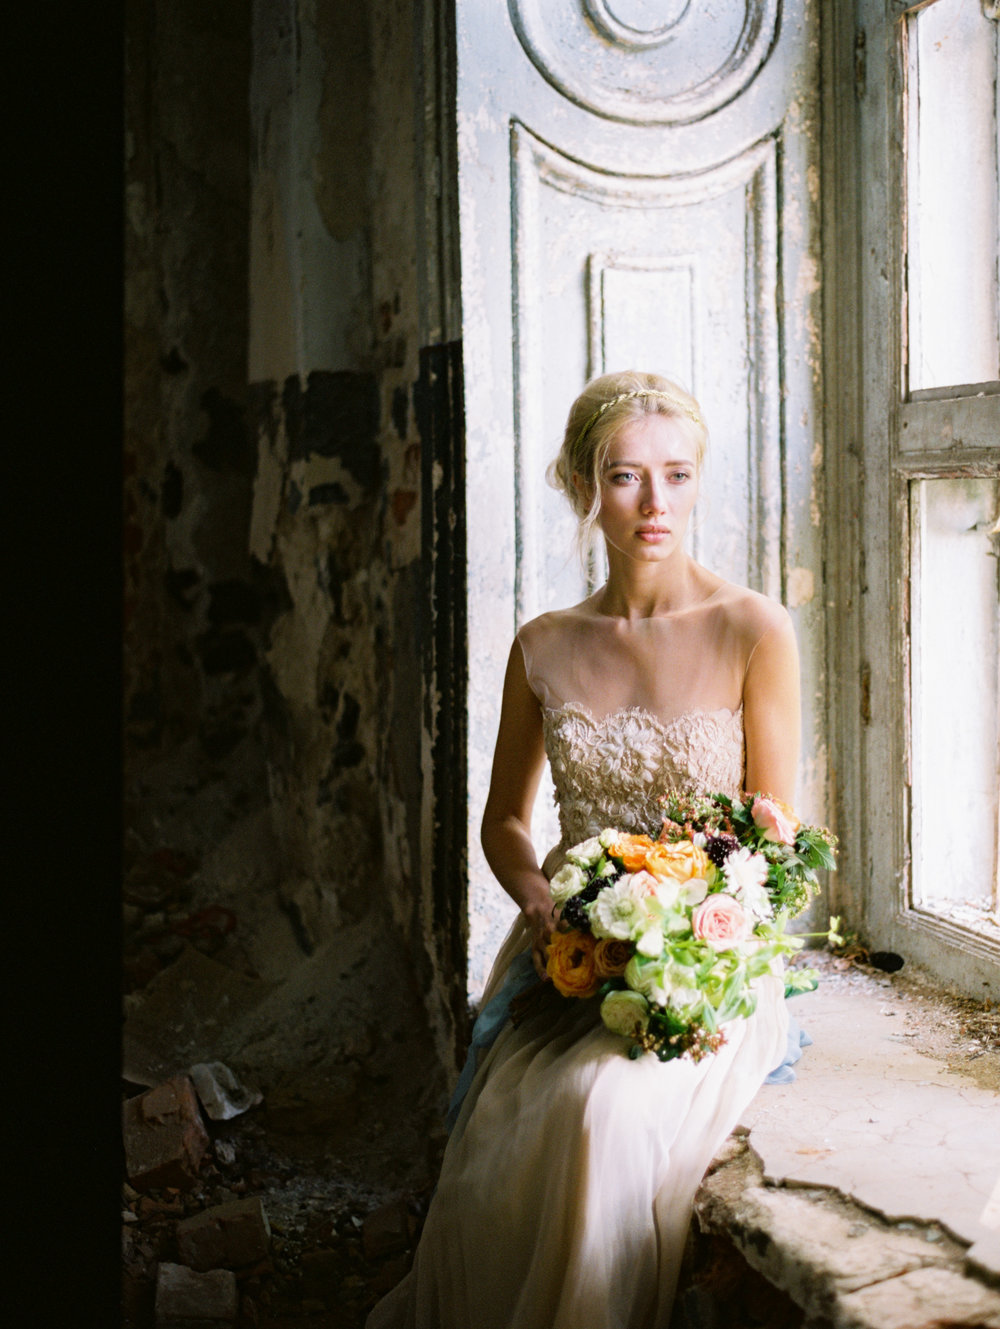 wedding-styled-shoot-russia-inspiration-elena-pavlova-photography-metamorphoses-orpheus-eurydice (15).jpg